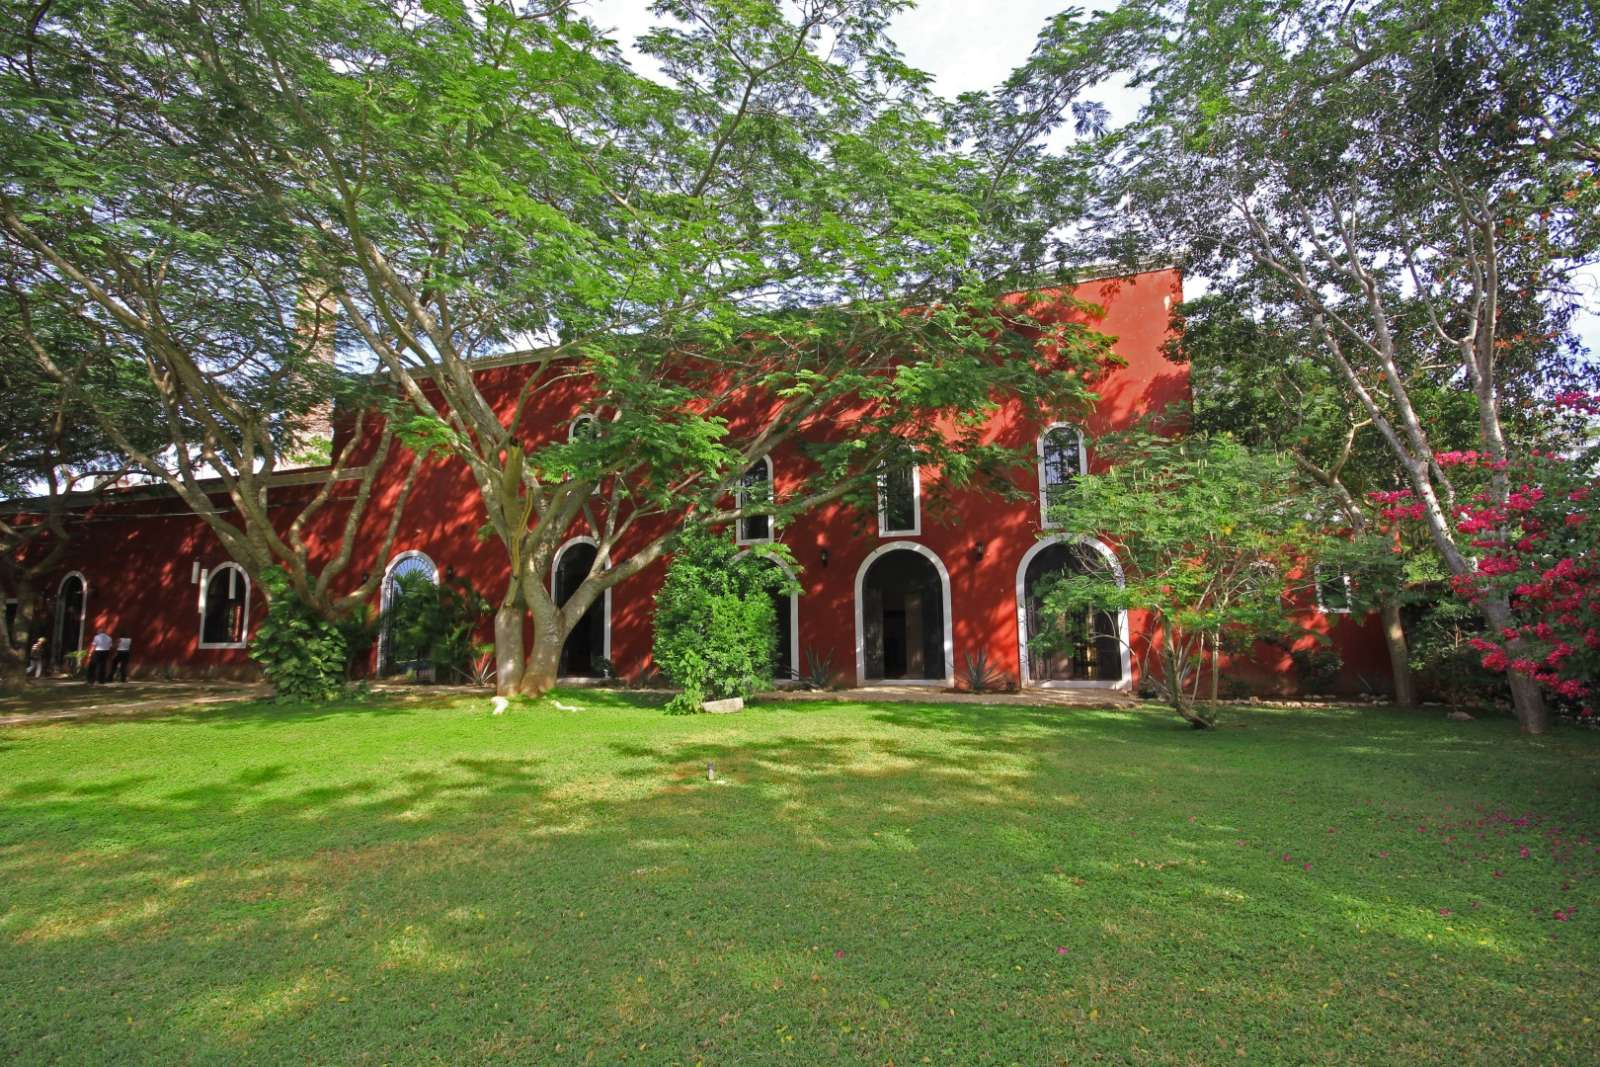 Building at Hacienda Santa Cruz